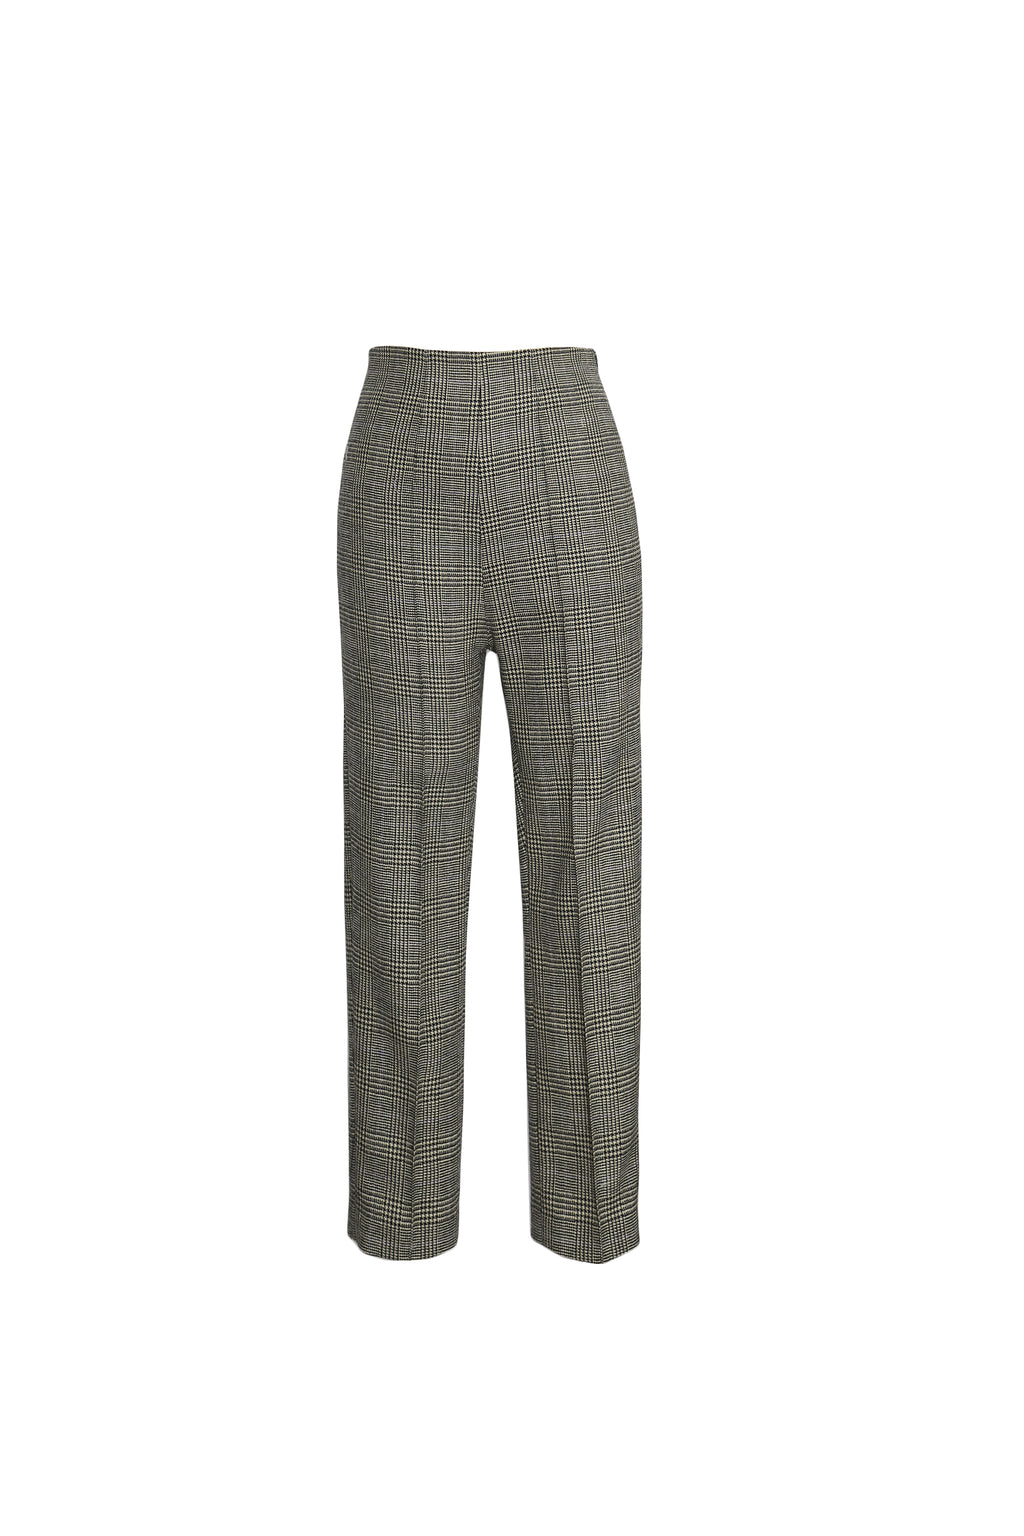 Prince of Wales checked wool-blend pants